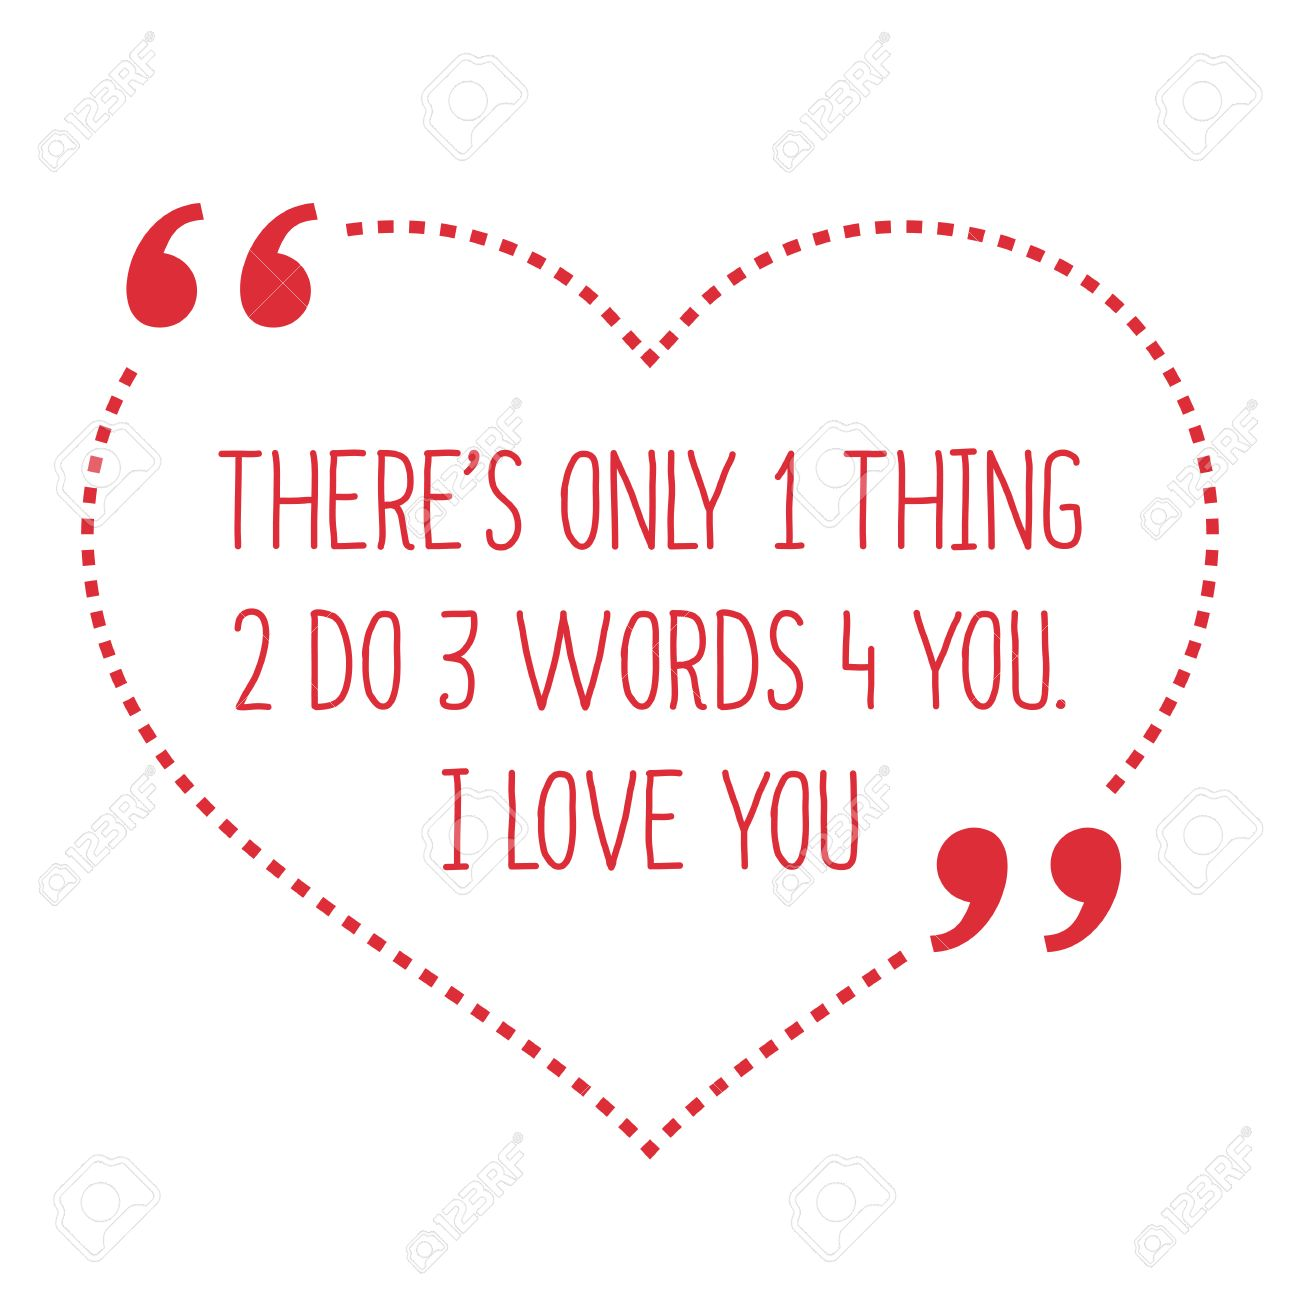 Funny Love Quotes Funny Love Quotethere's Only 1 Thing 2 Do 3 Words 4 Youi